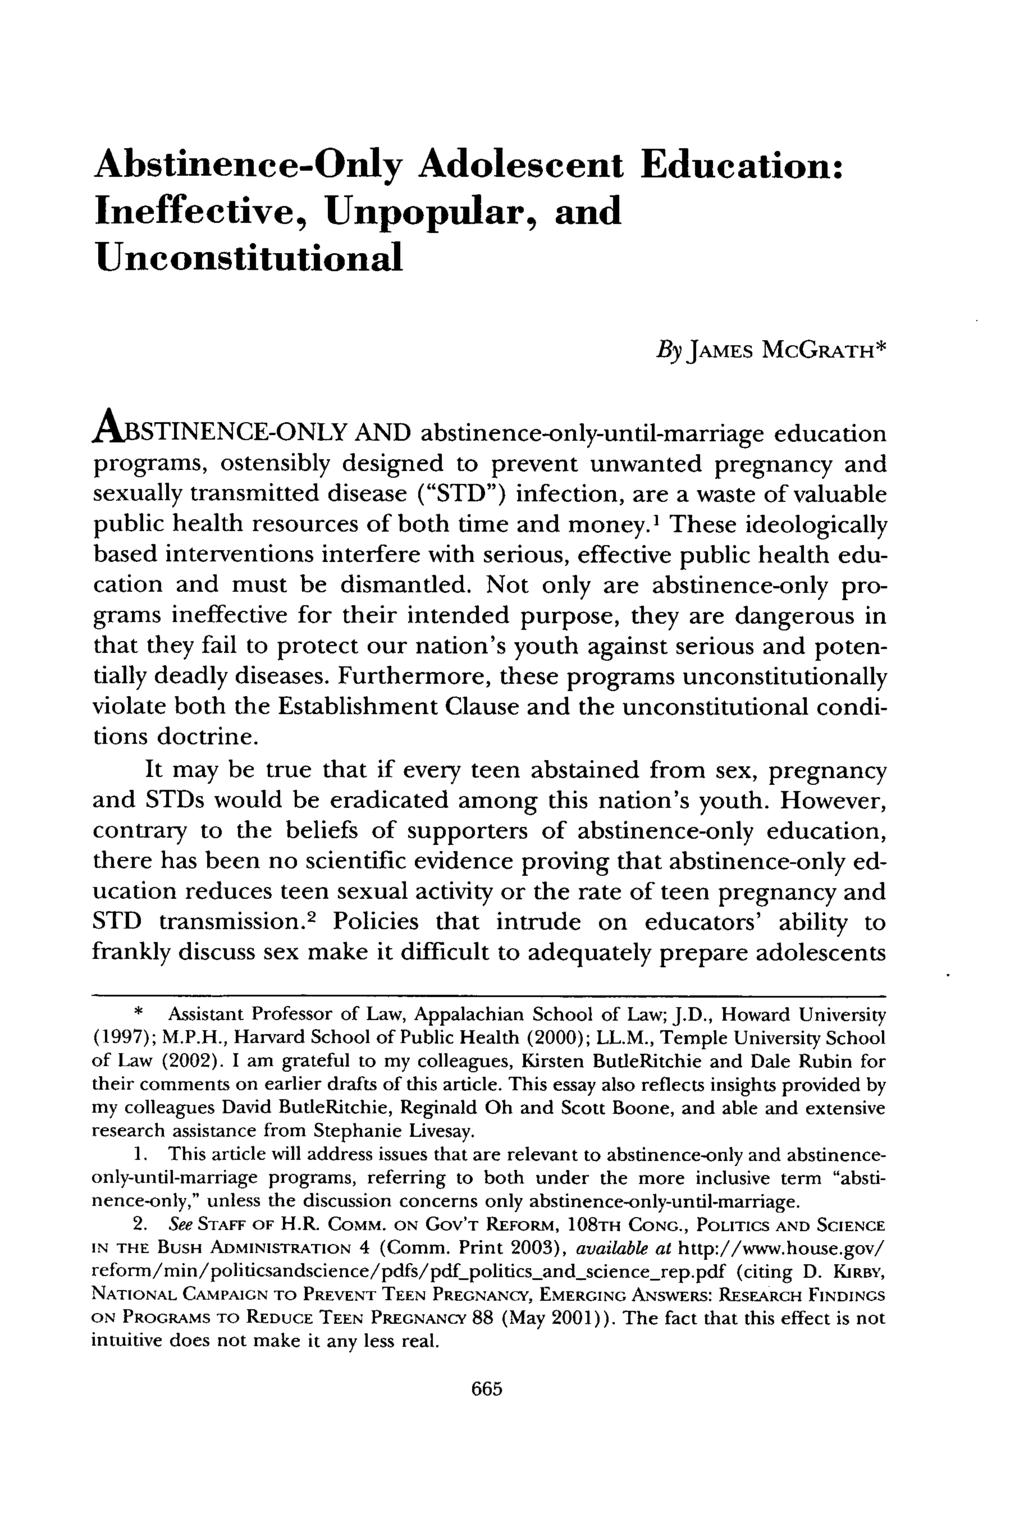 Abstinence-Only Adolescent Education: Ineffective, Unpopular, and Unconstitutional By JAMES MCGRATH* ABSTINENCE-ONLY AND abstinence-only-until-marriage education programs, ostensibly designed to